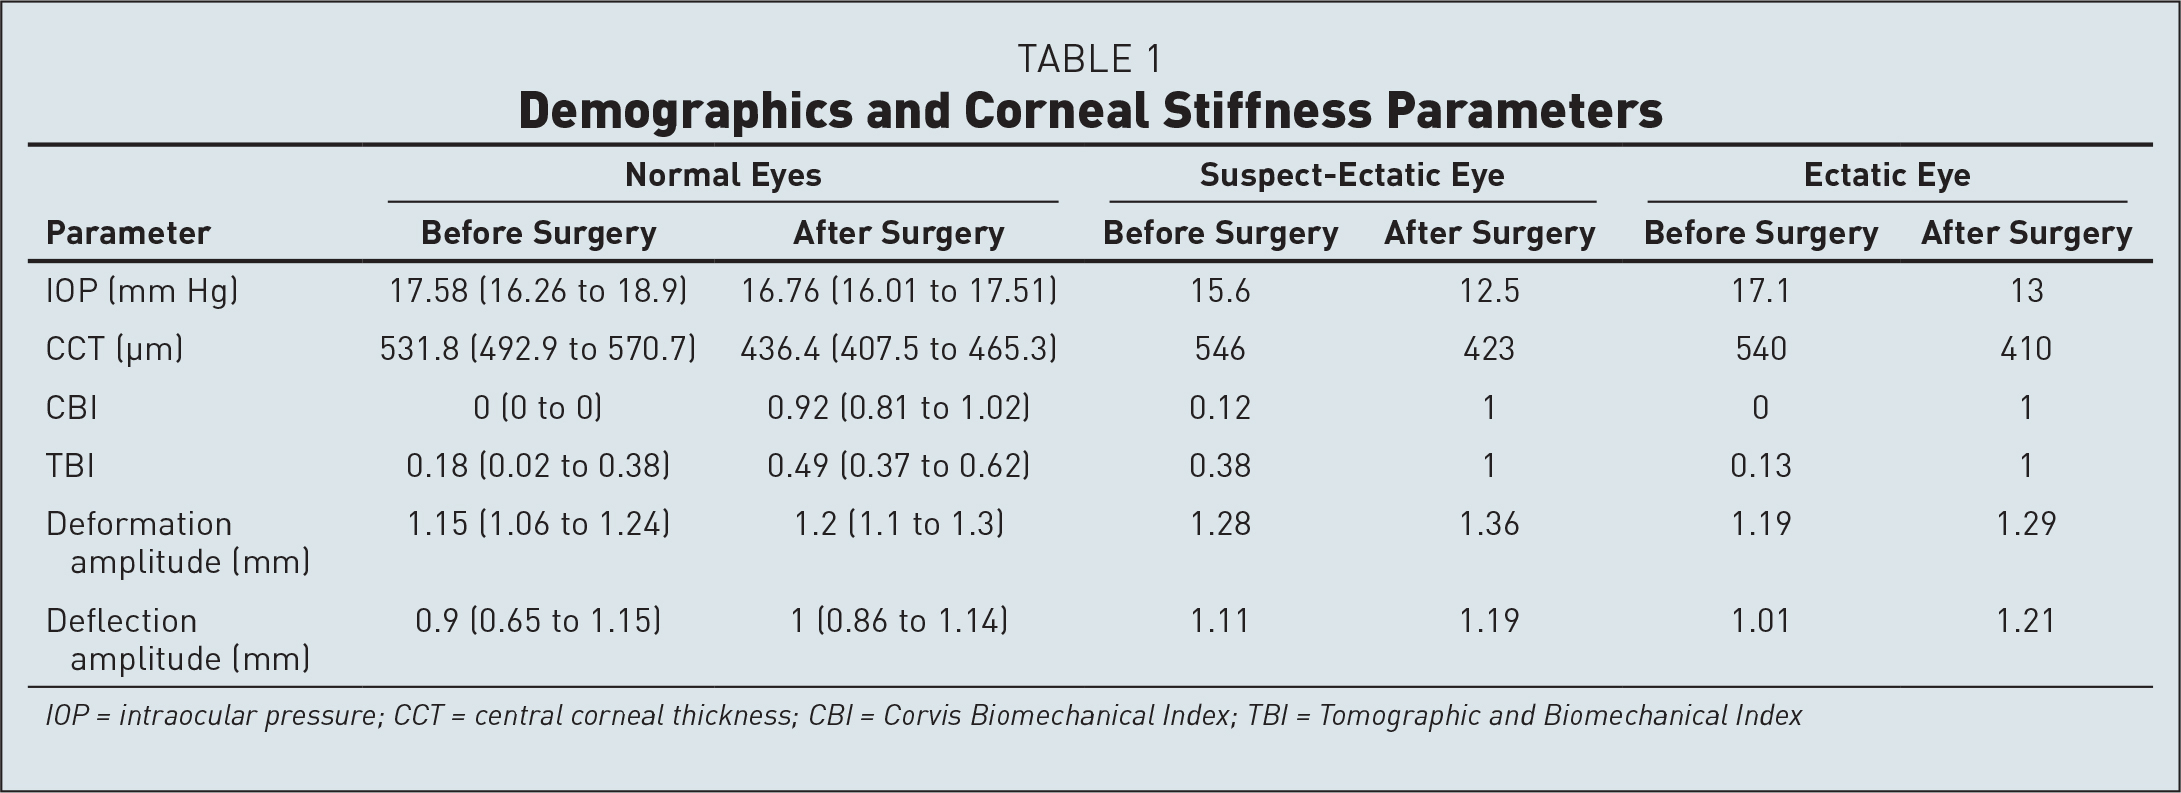 Demographics and Corneal Stiffness Parameters